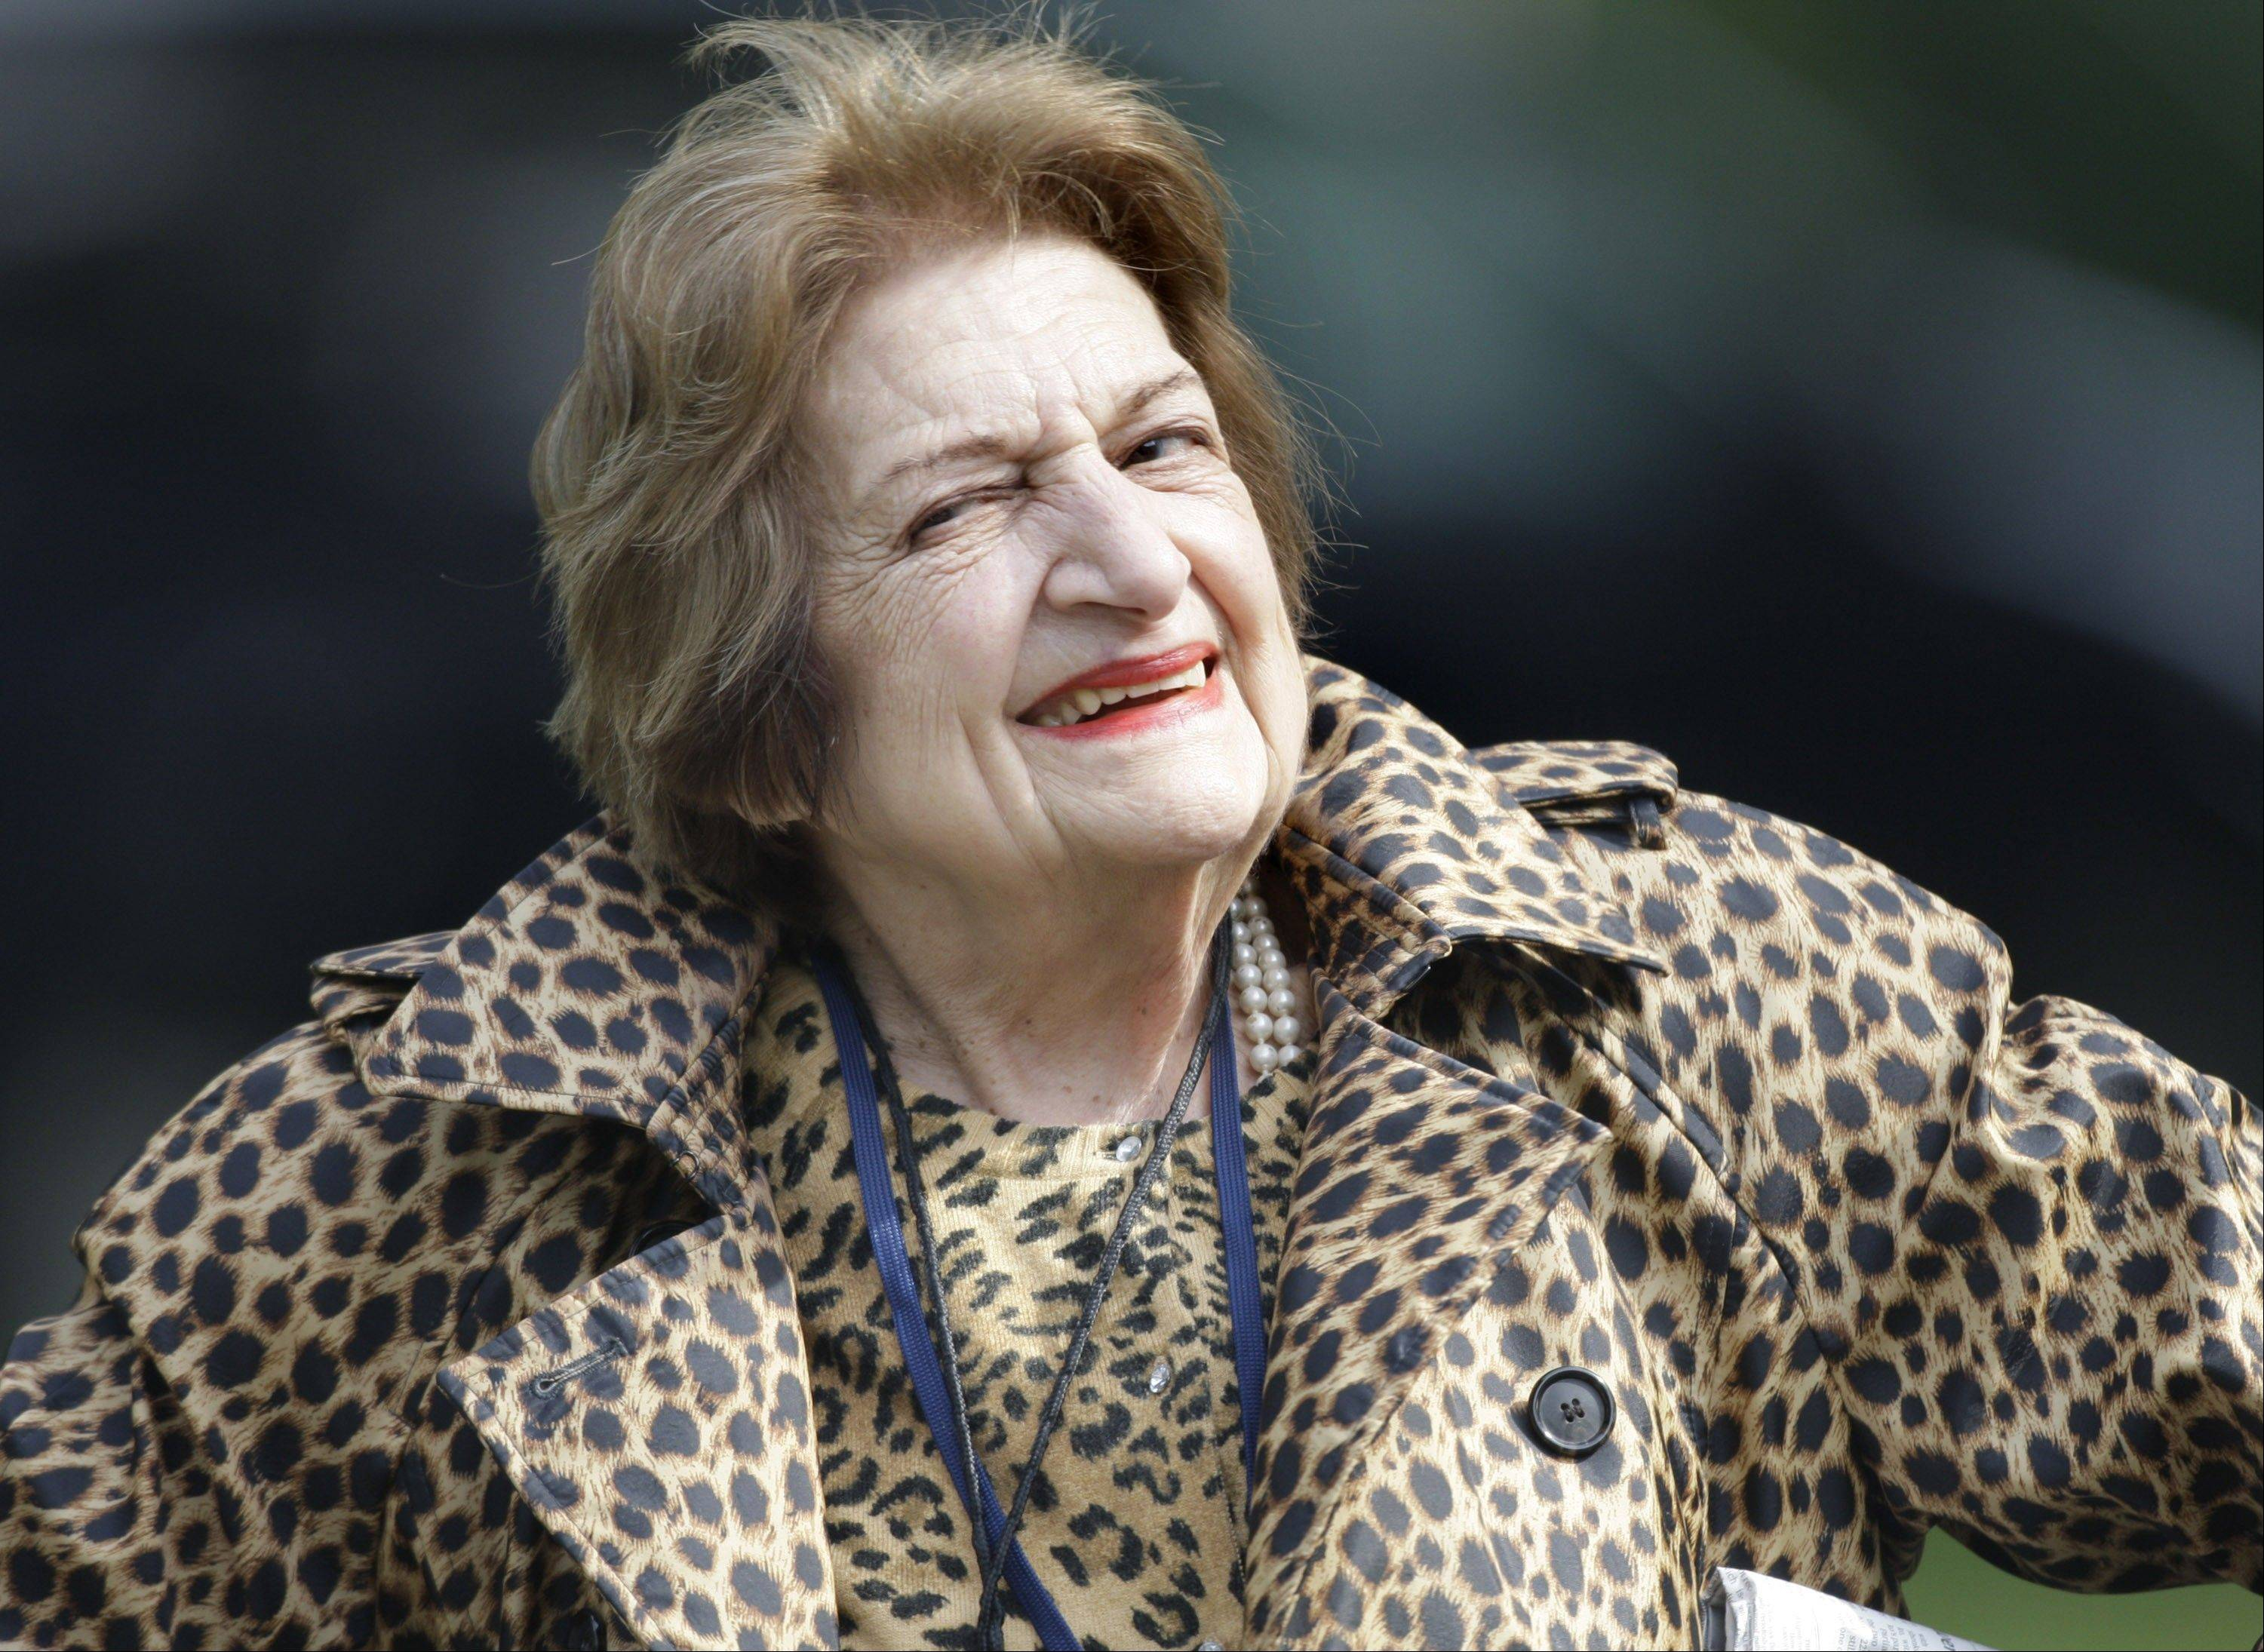 "Associated PressIn this photo taken Oct. 16, 2007, veteran White House correspondent Helen Thomas smiles as she leaves the White House after attending a briefing. Thomas, a pioneer for women in journalism and an irrepressible White House correspondent, has died. She was 92. A friend said Thomas died at her apartment in Washington on Saturday morning. Thomas made her name as a bulldog for United Press International in the great wire-service rivalries of old. She used her seat in the front row of history to grill nine presidents -- often to their discomfort and was not shy about sharing her opinions. She was persistent to the point of badgering; one White House press secretary described her questioning as ""torture"" -- and he was one of her fans."